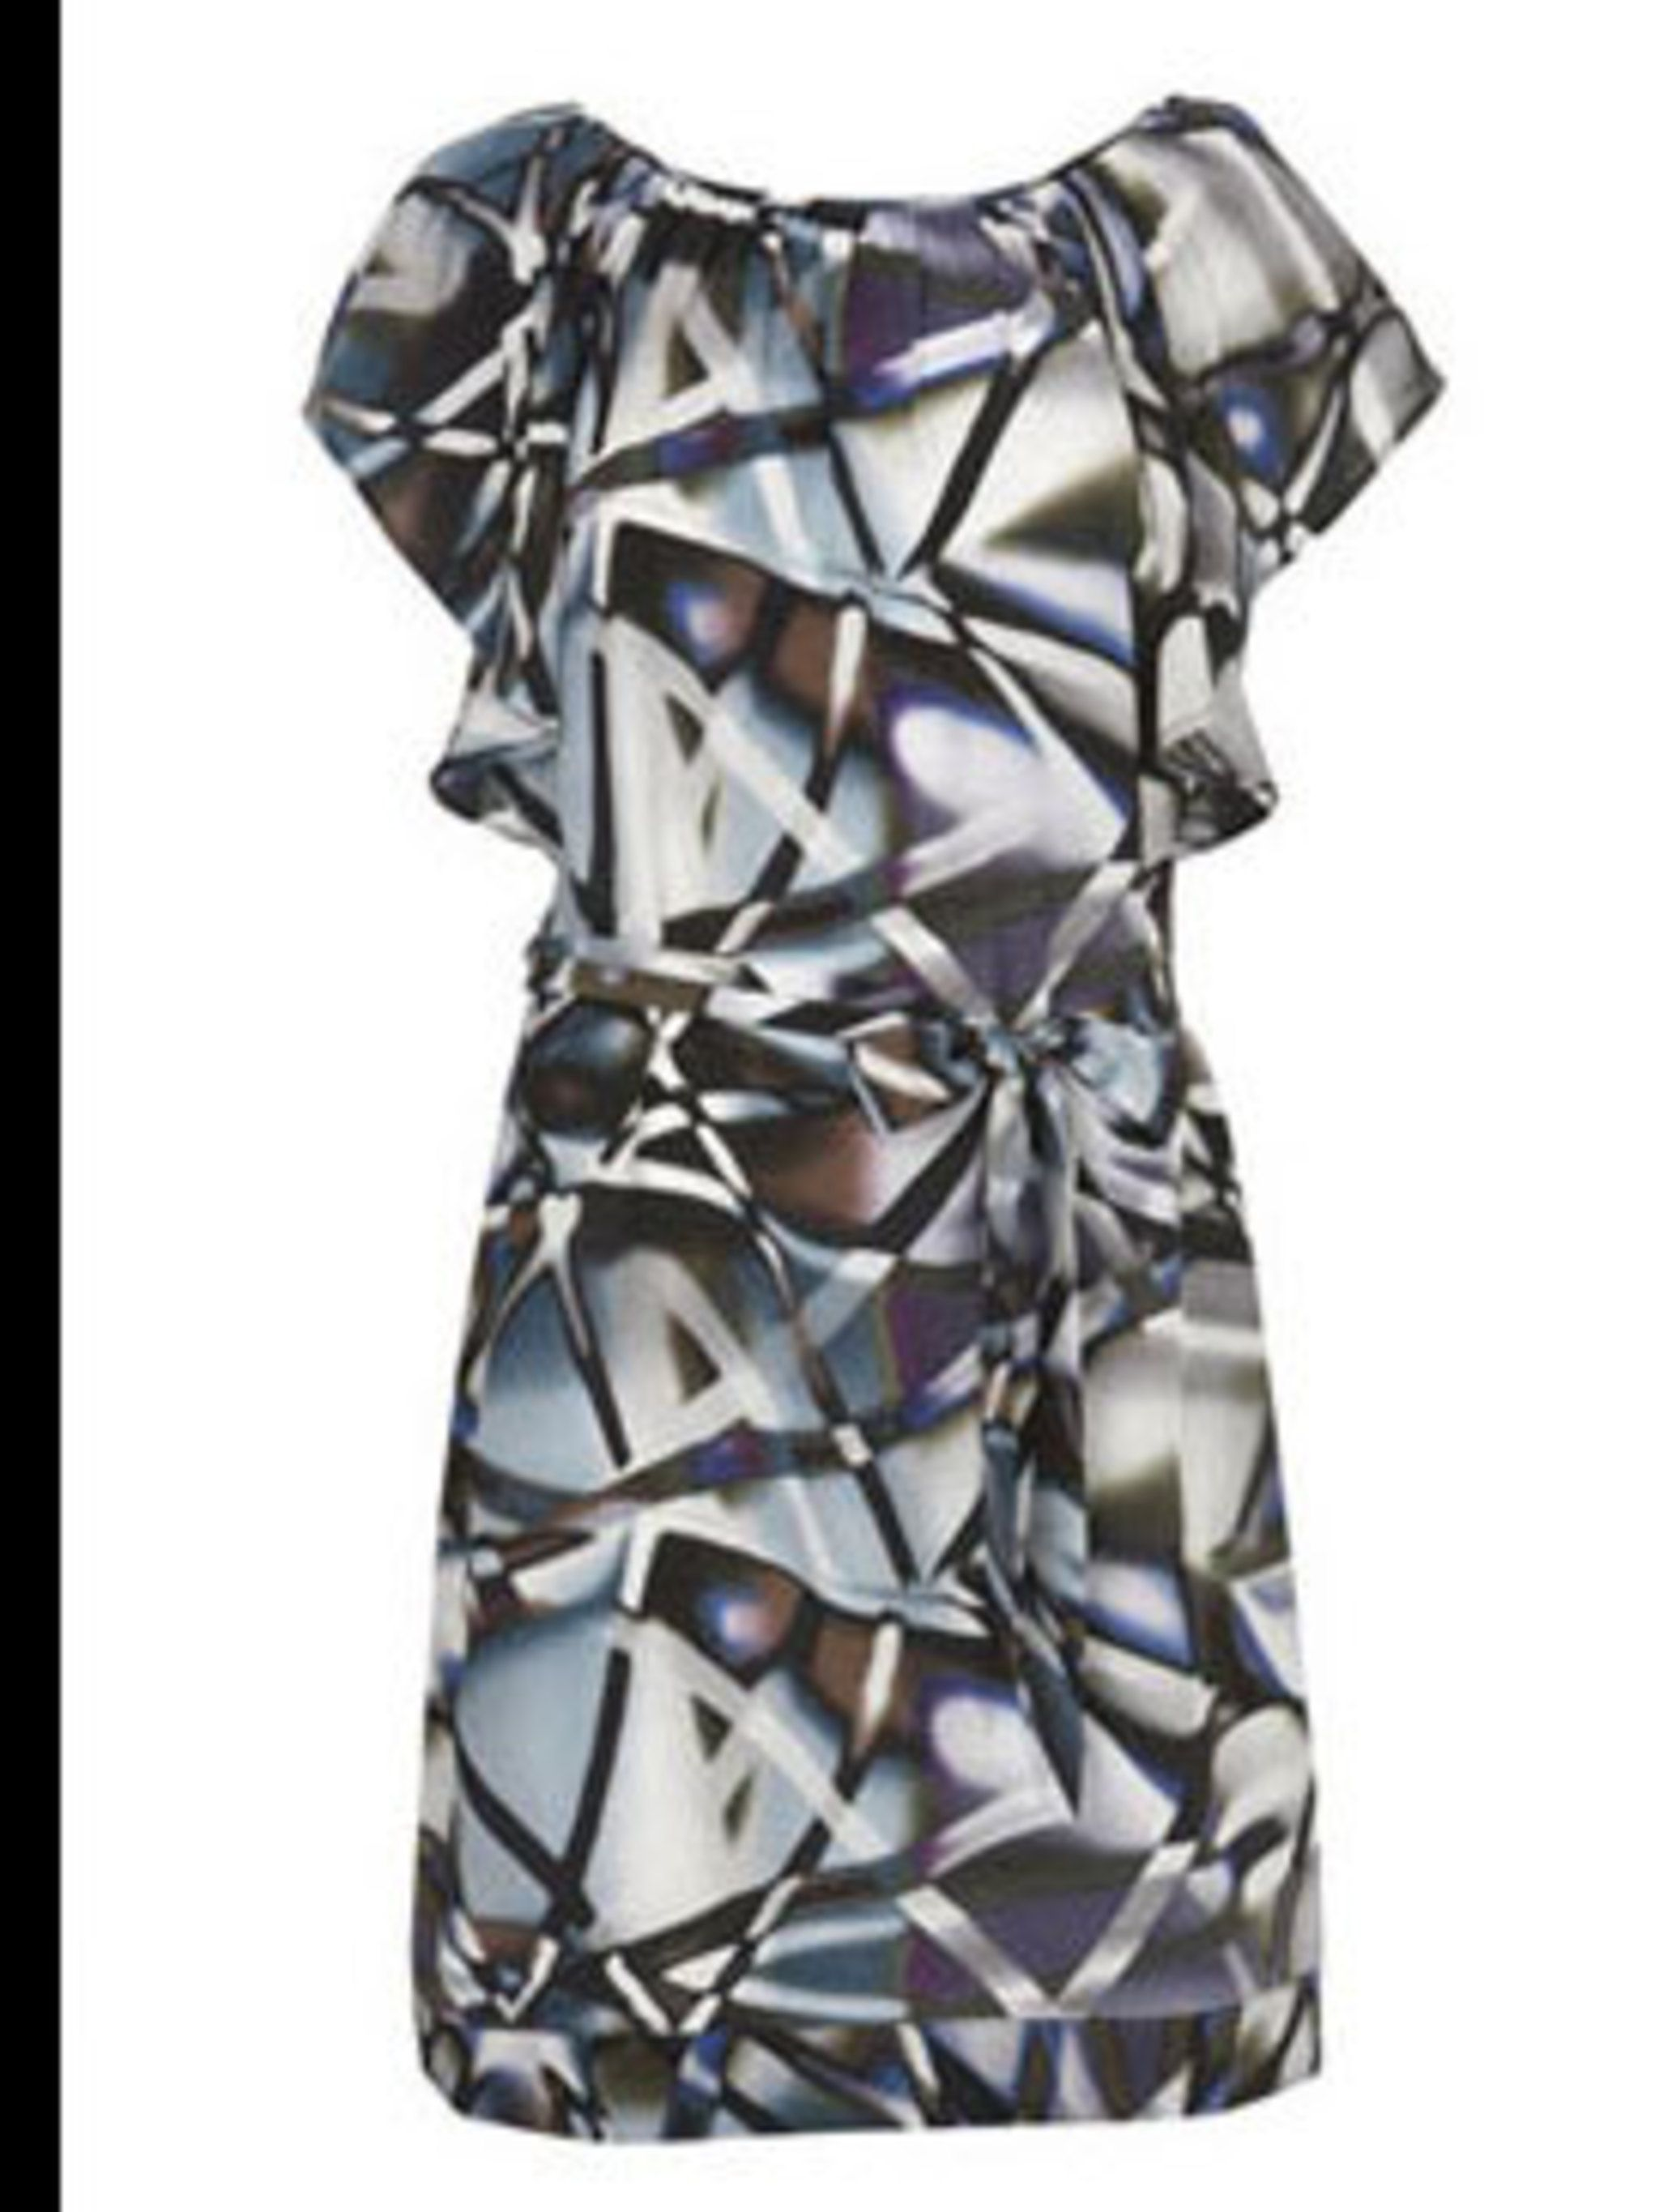 """<p>Dress, £60 by <a href=""""http://www.warehouse.co.uk/fcp/product/fashion//CRYSTAL-SHADOW-DRESS/12639"""">Warehouse</a></p>"""